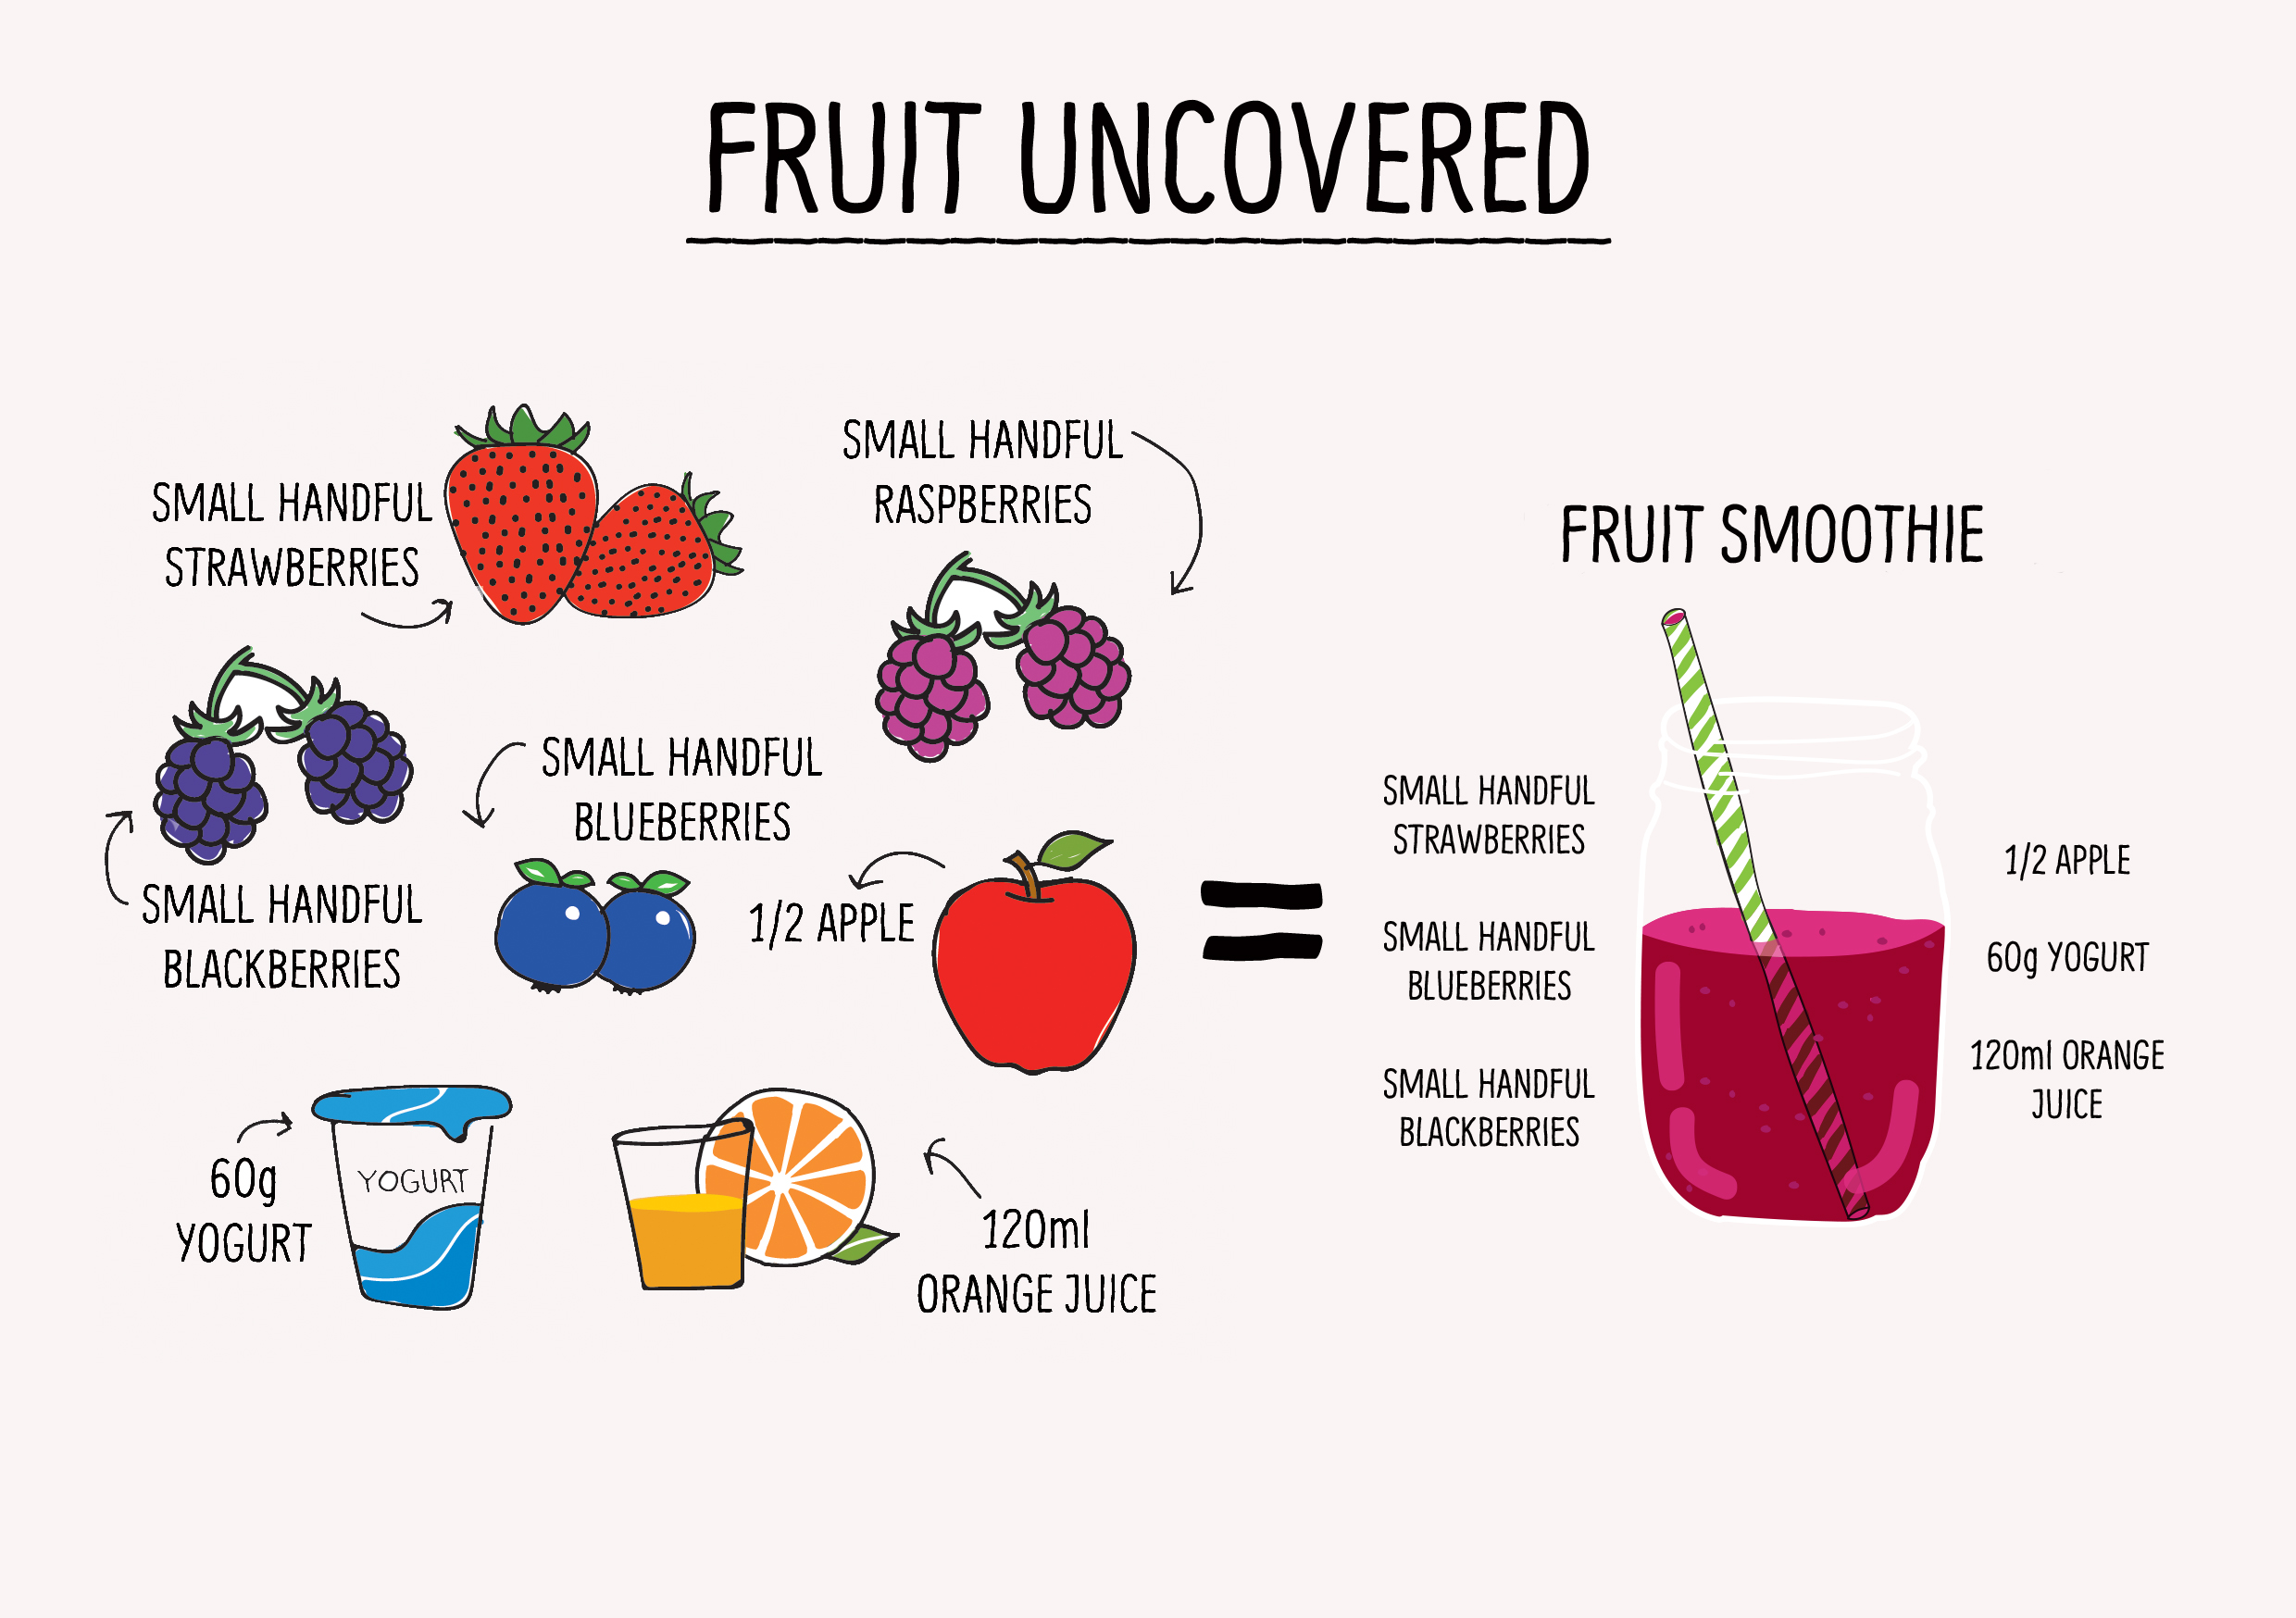 Smoothies_and_juices_image